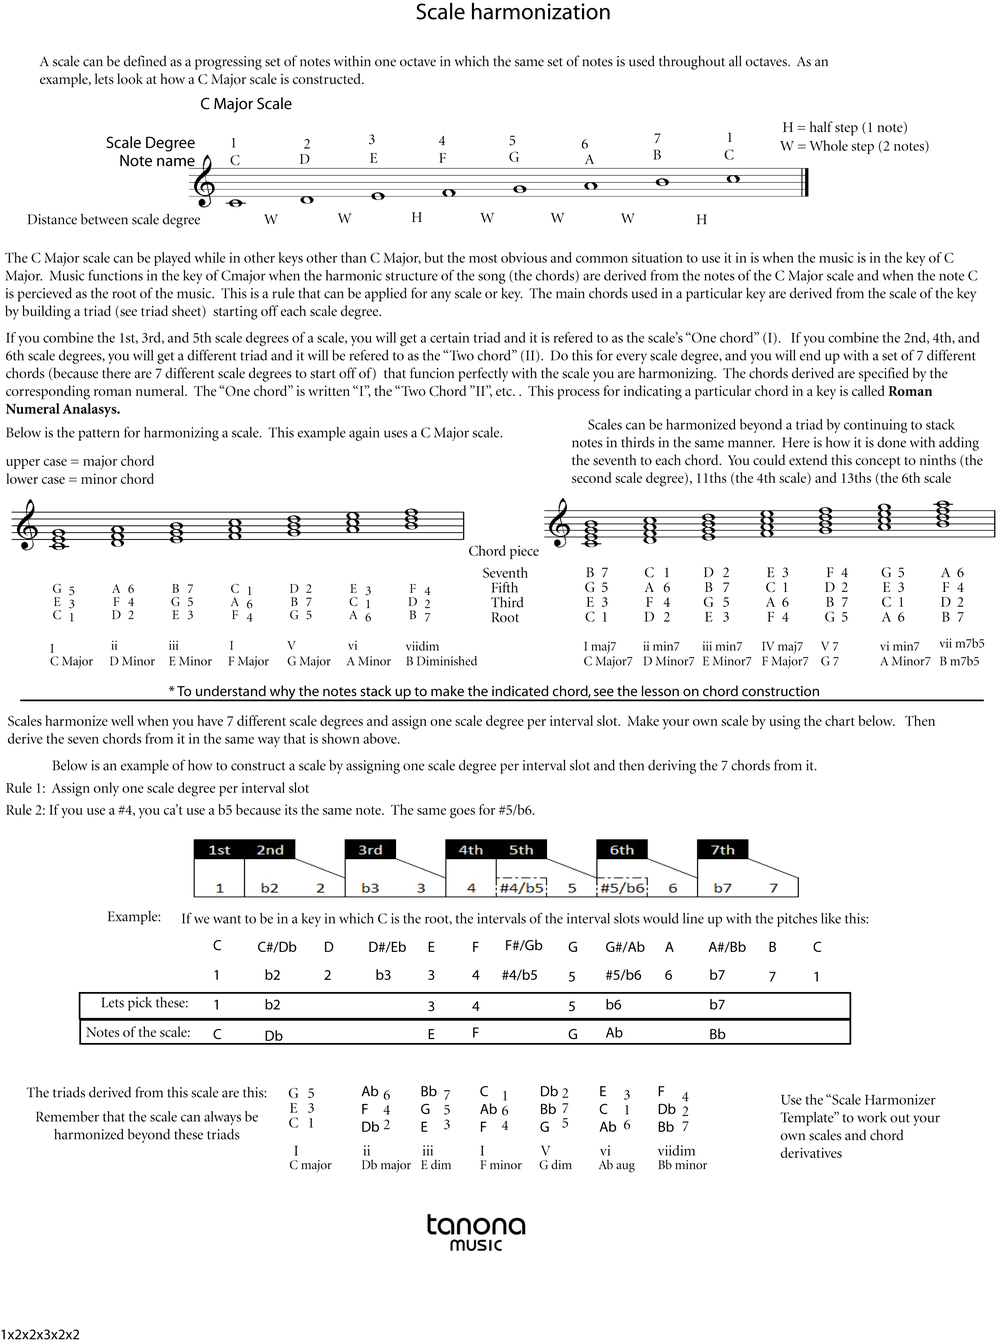 Tanona Music - Scale Construction and Harmonization.png